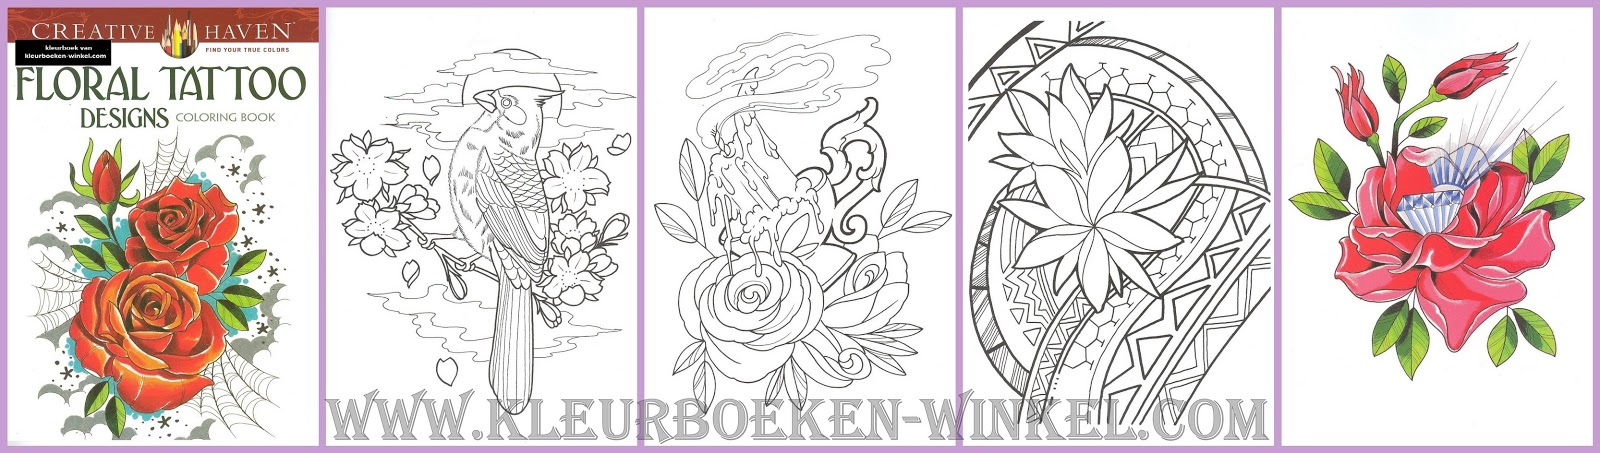 CH 60 floral tattoo designs, kleurboek tattoos